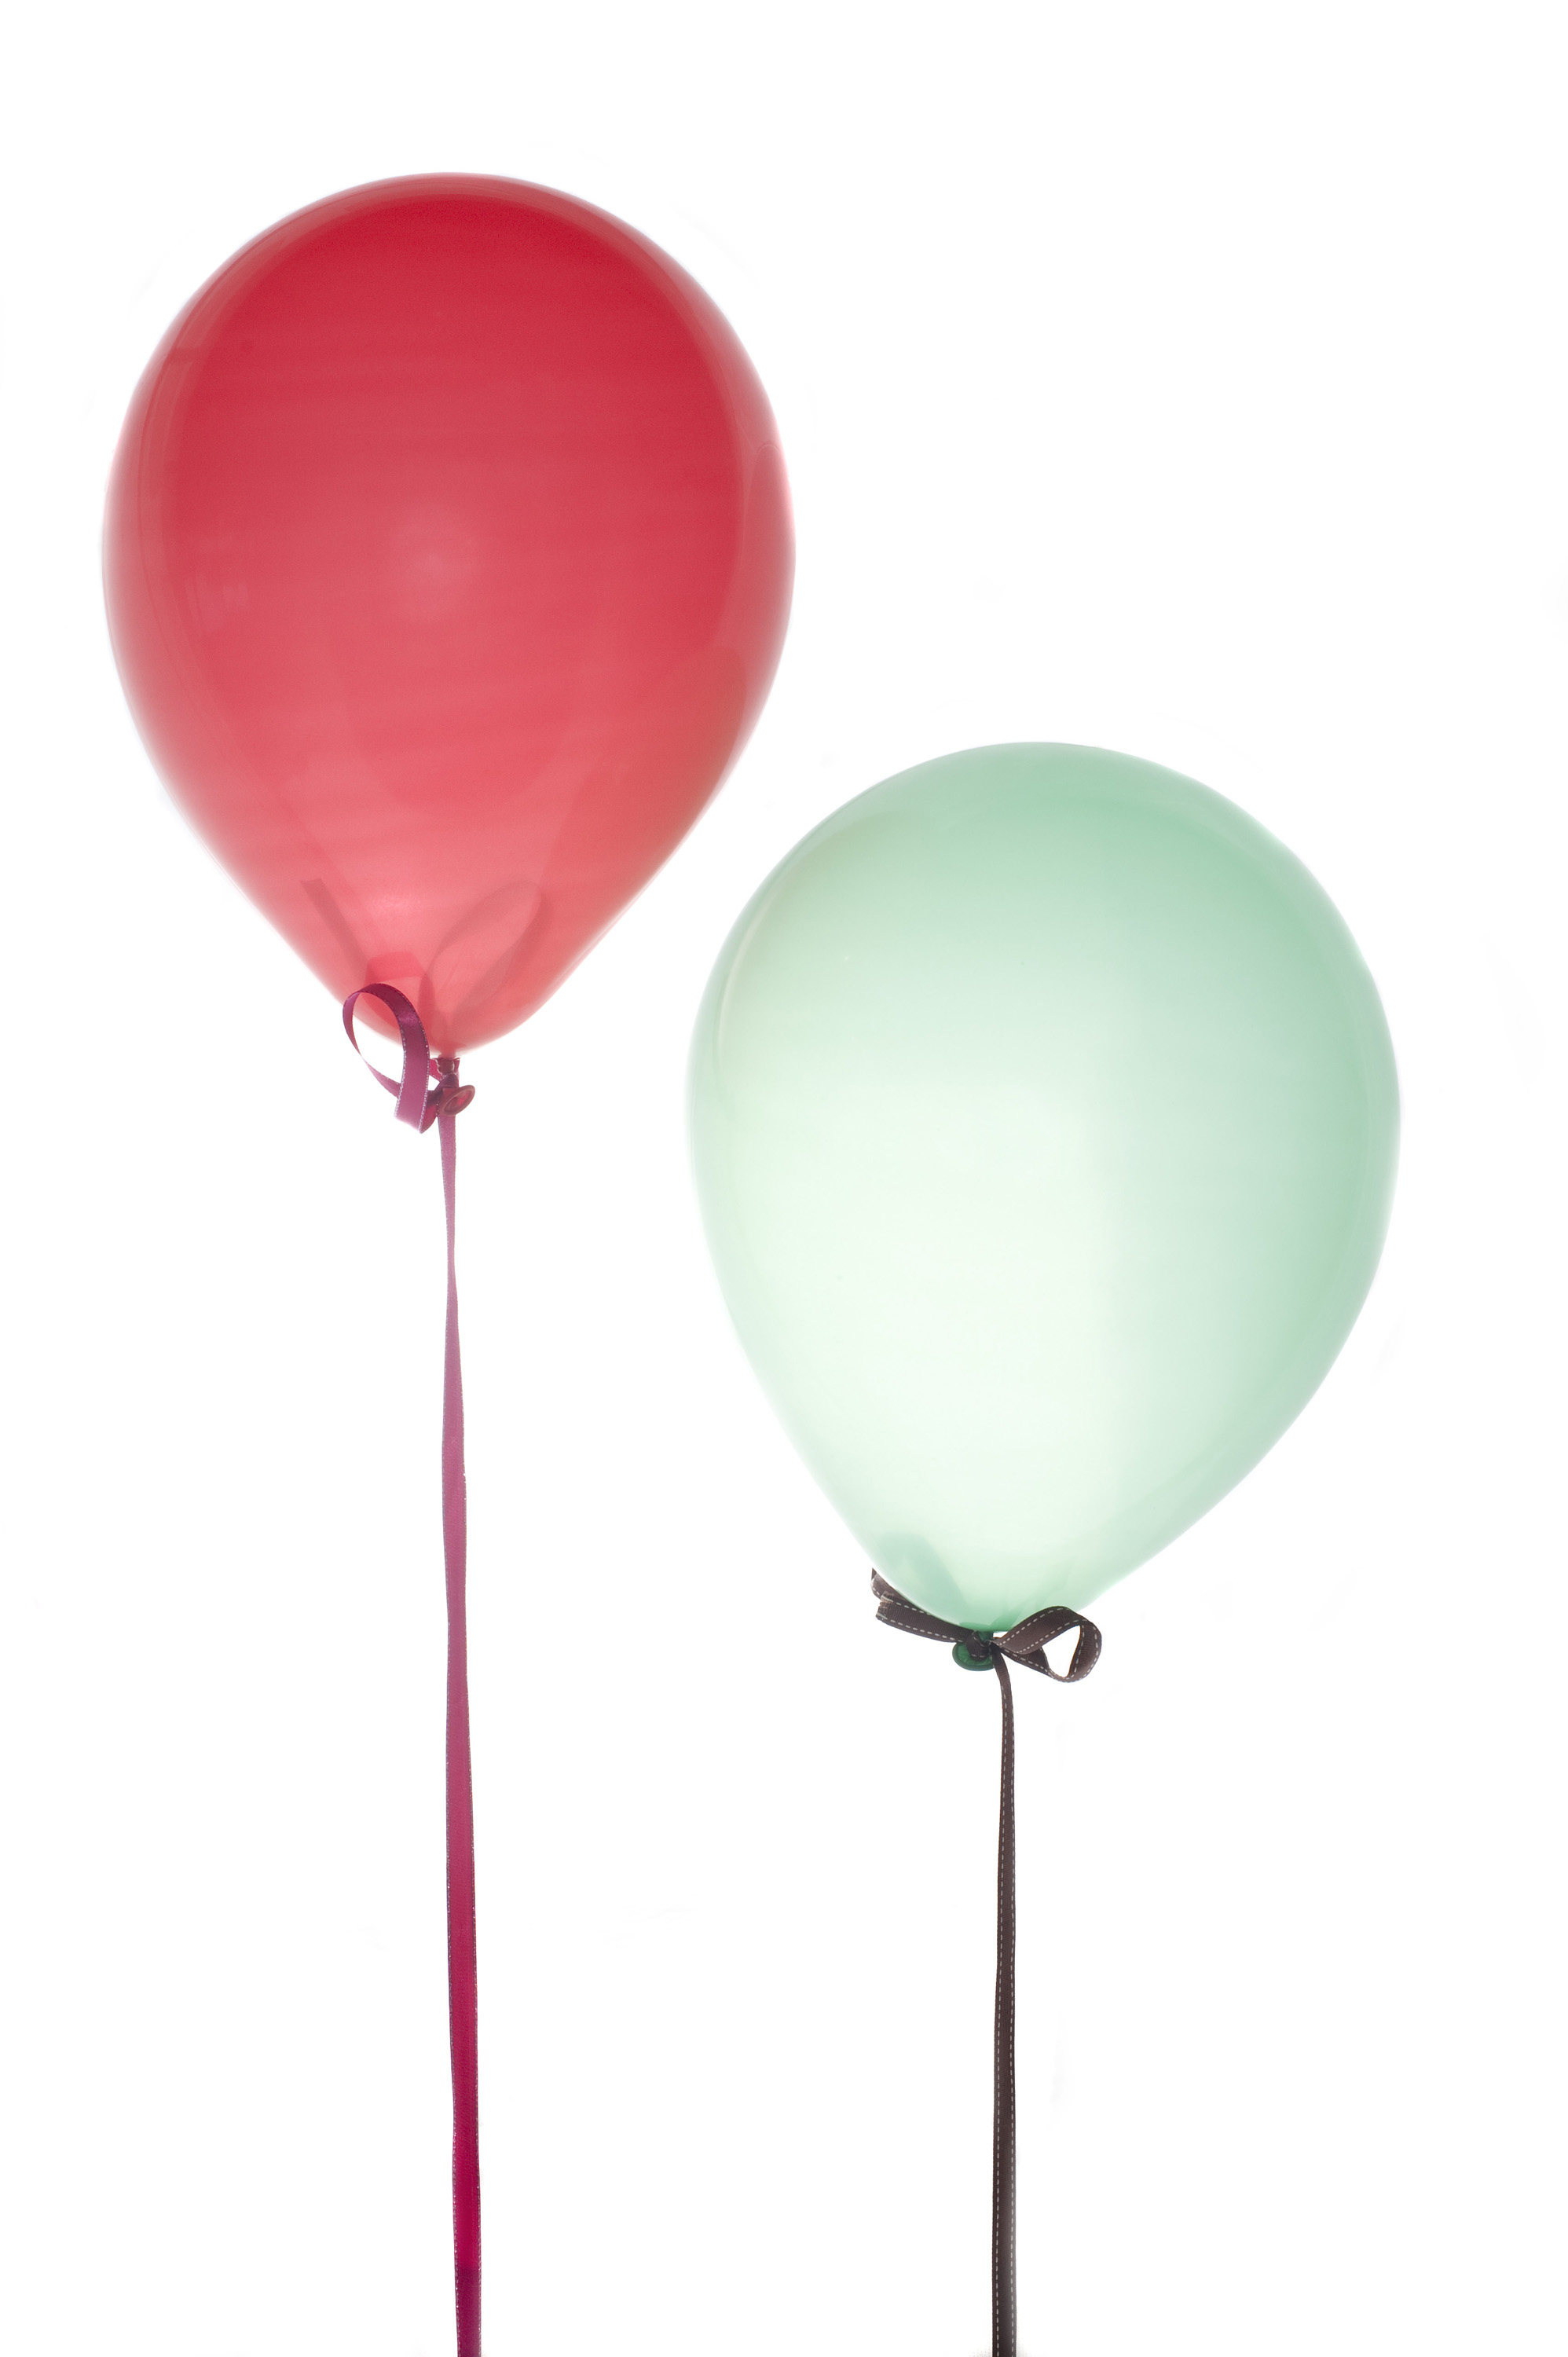 free stock photo 3834 floating balloons freeimageslive